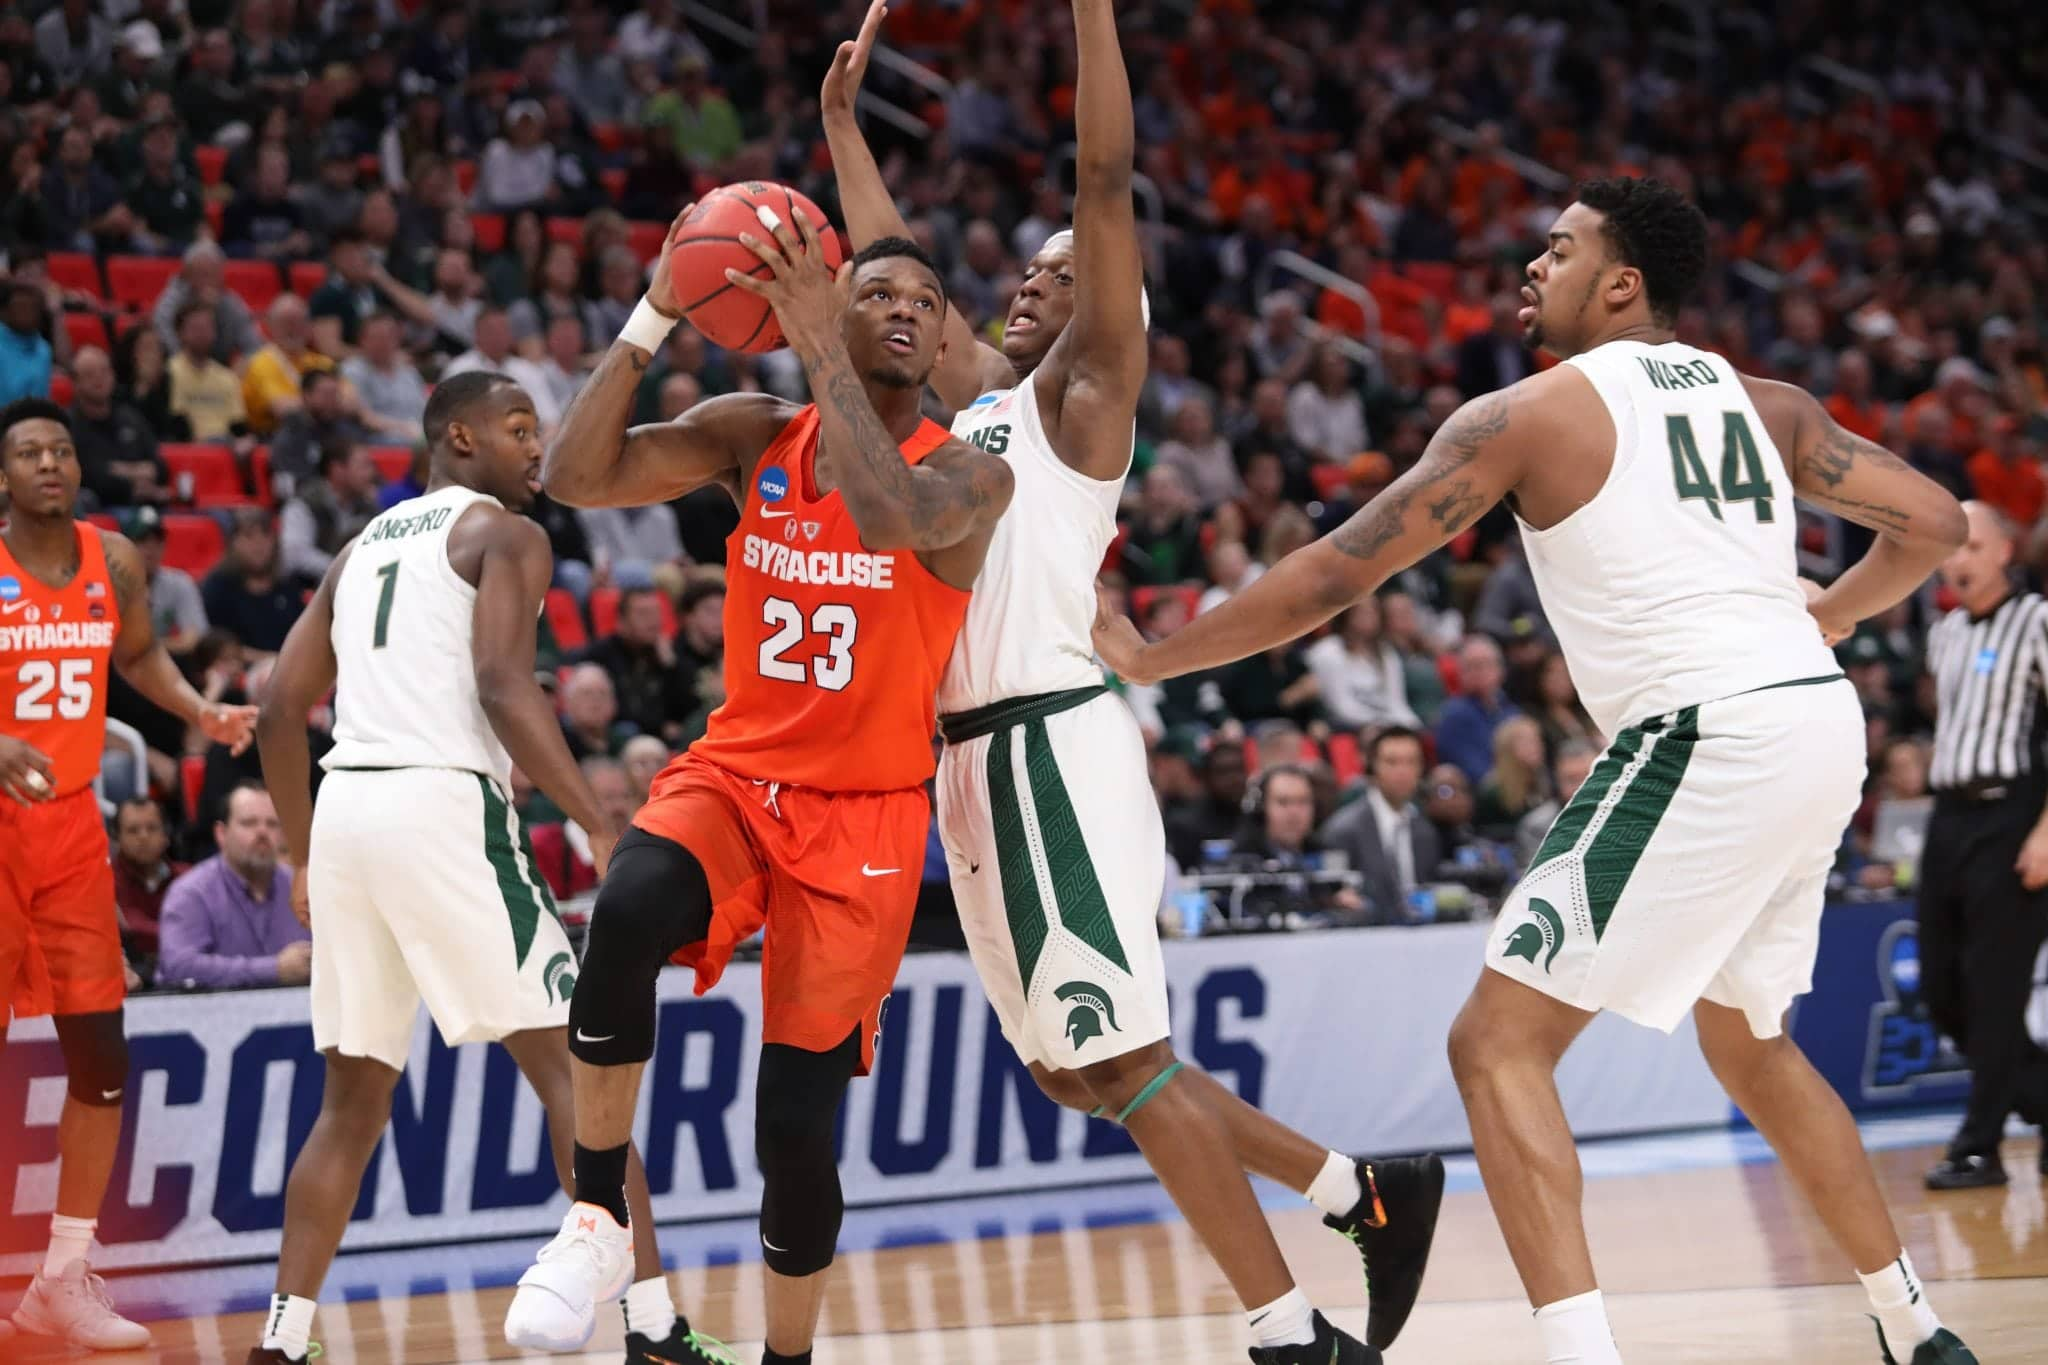 Frank Howard drives for Syracuse during its 55-53 win over Michigan State.